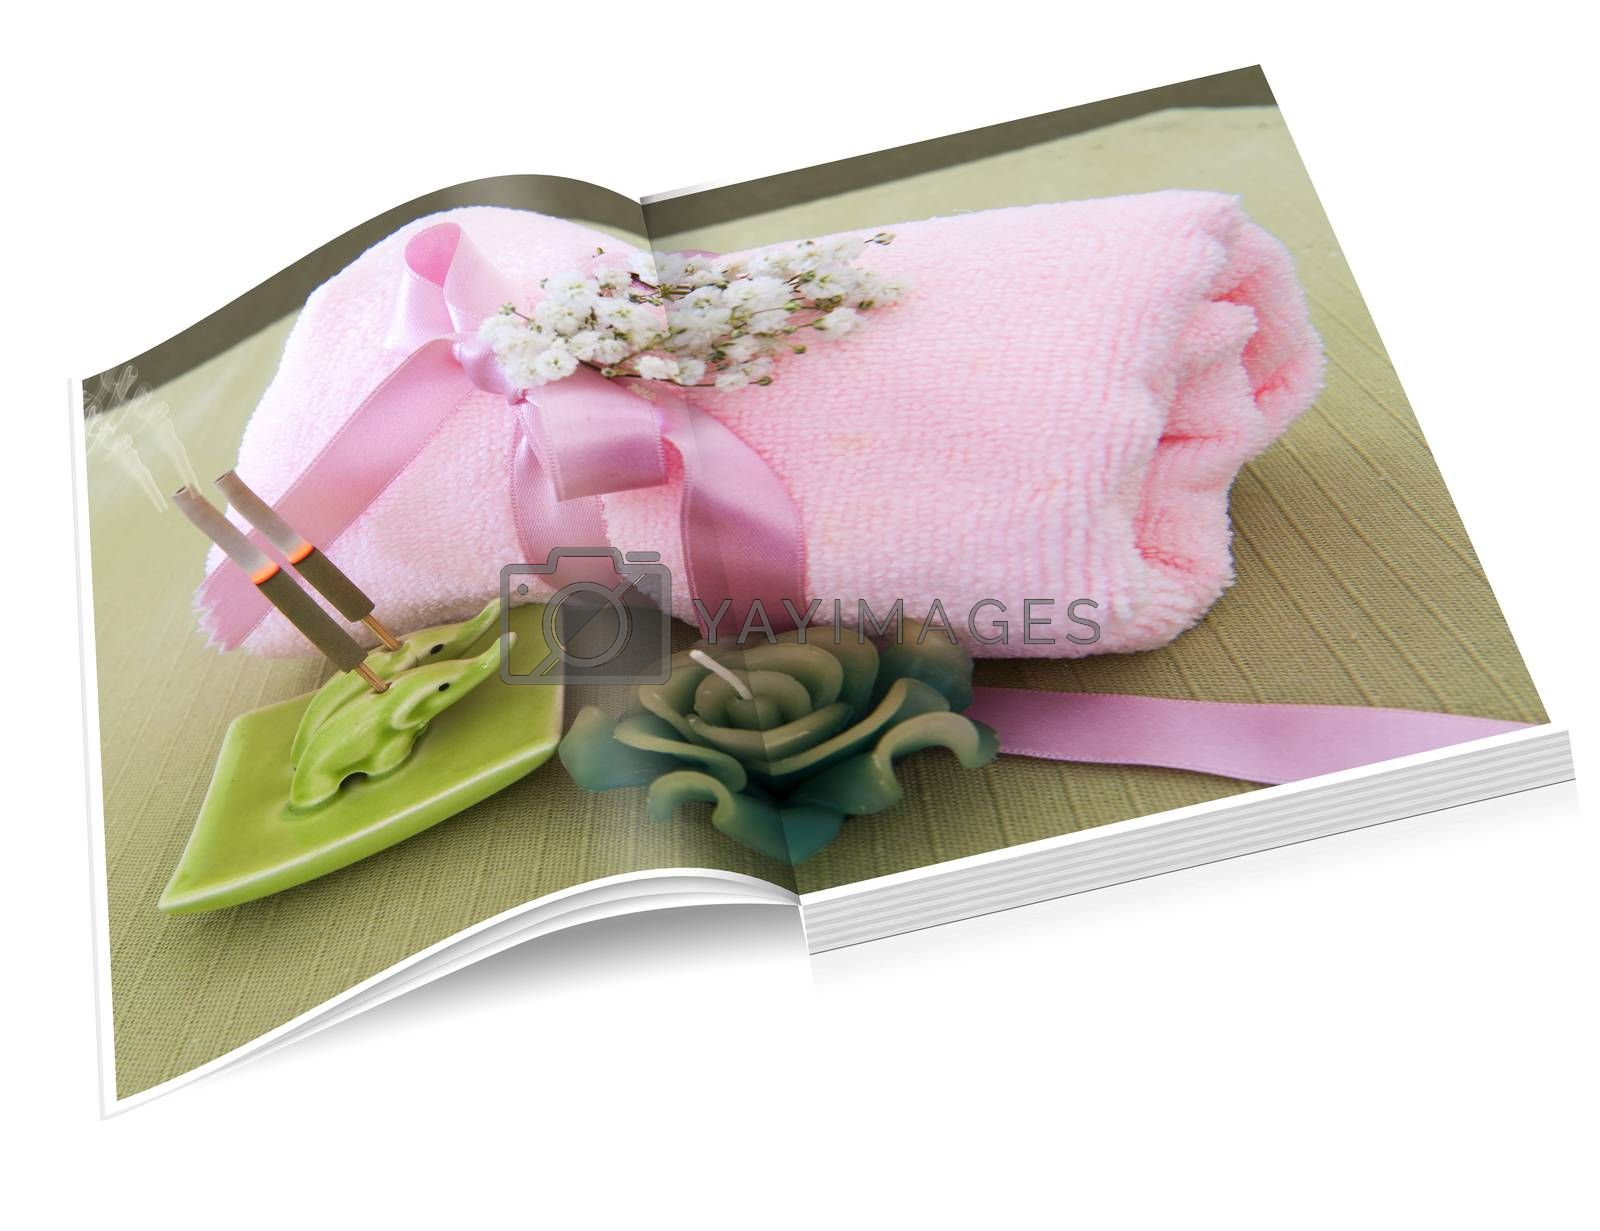 book illustration of pink towel, incense sticks and candle